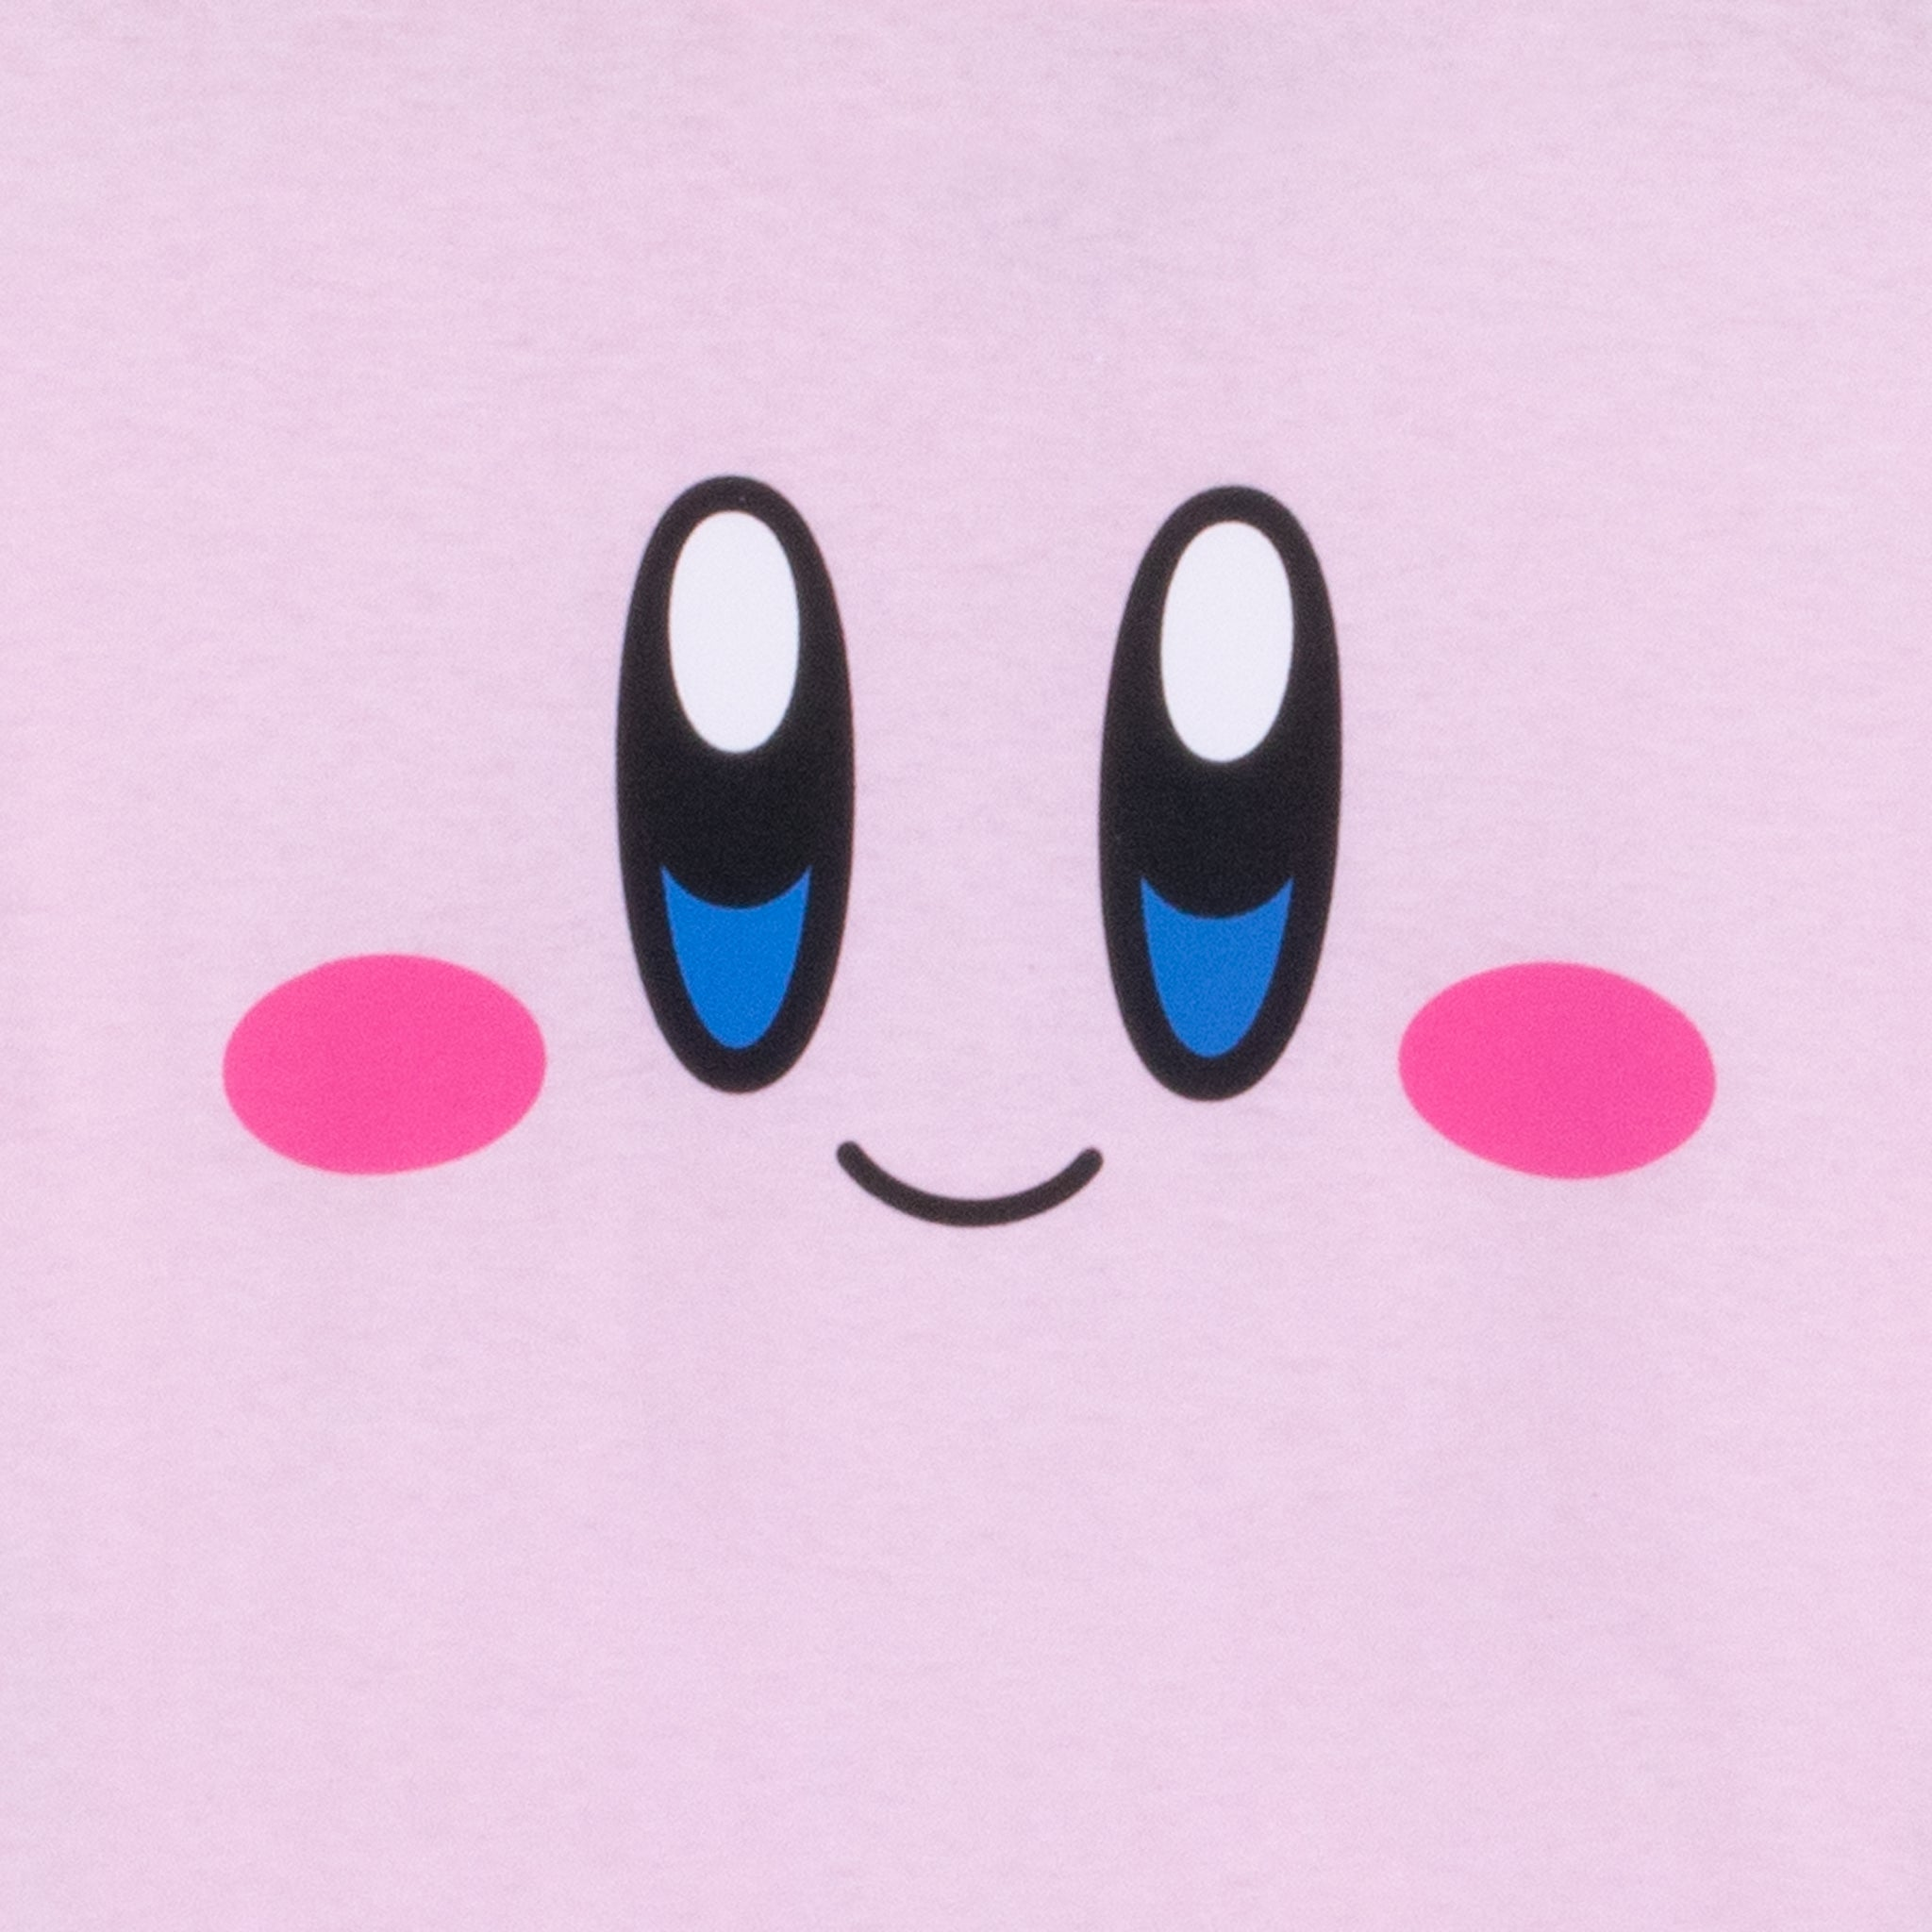 kirby pink face nintendo video games gaming t-shirt apparel shirt graphic culturefly